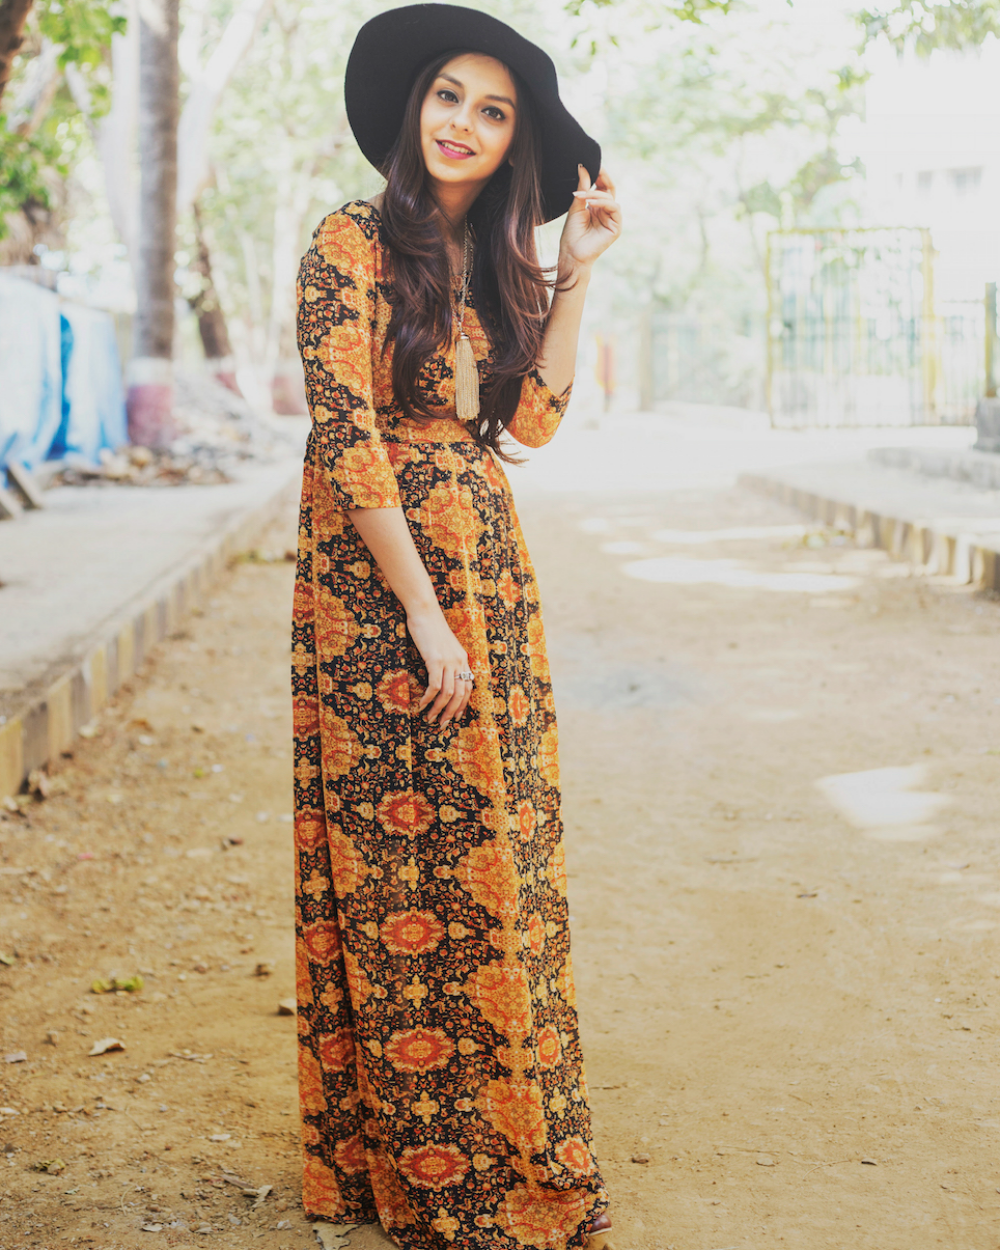 Boho At Heart Only Personal Style Photo Stories 10